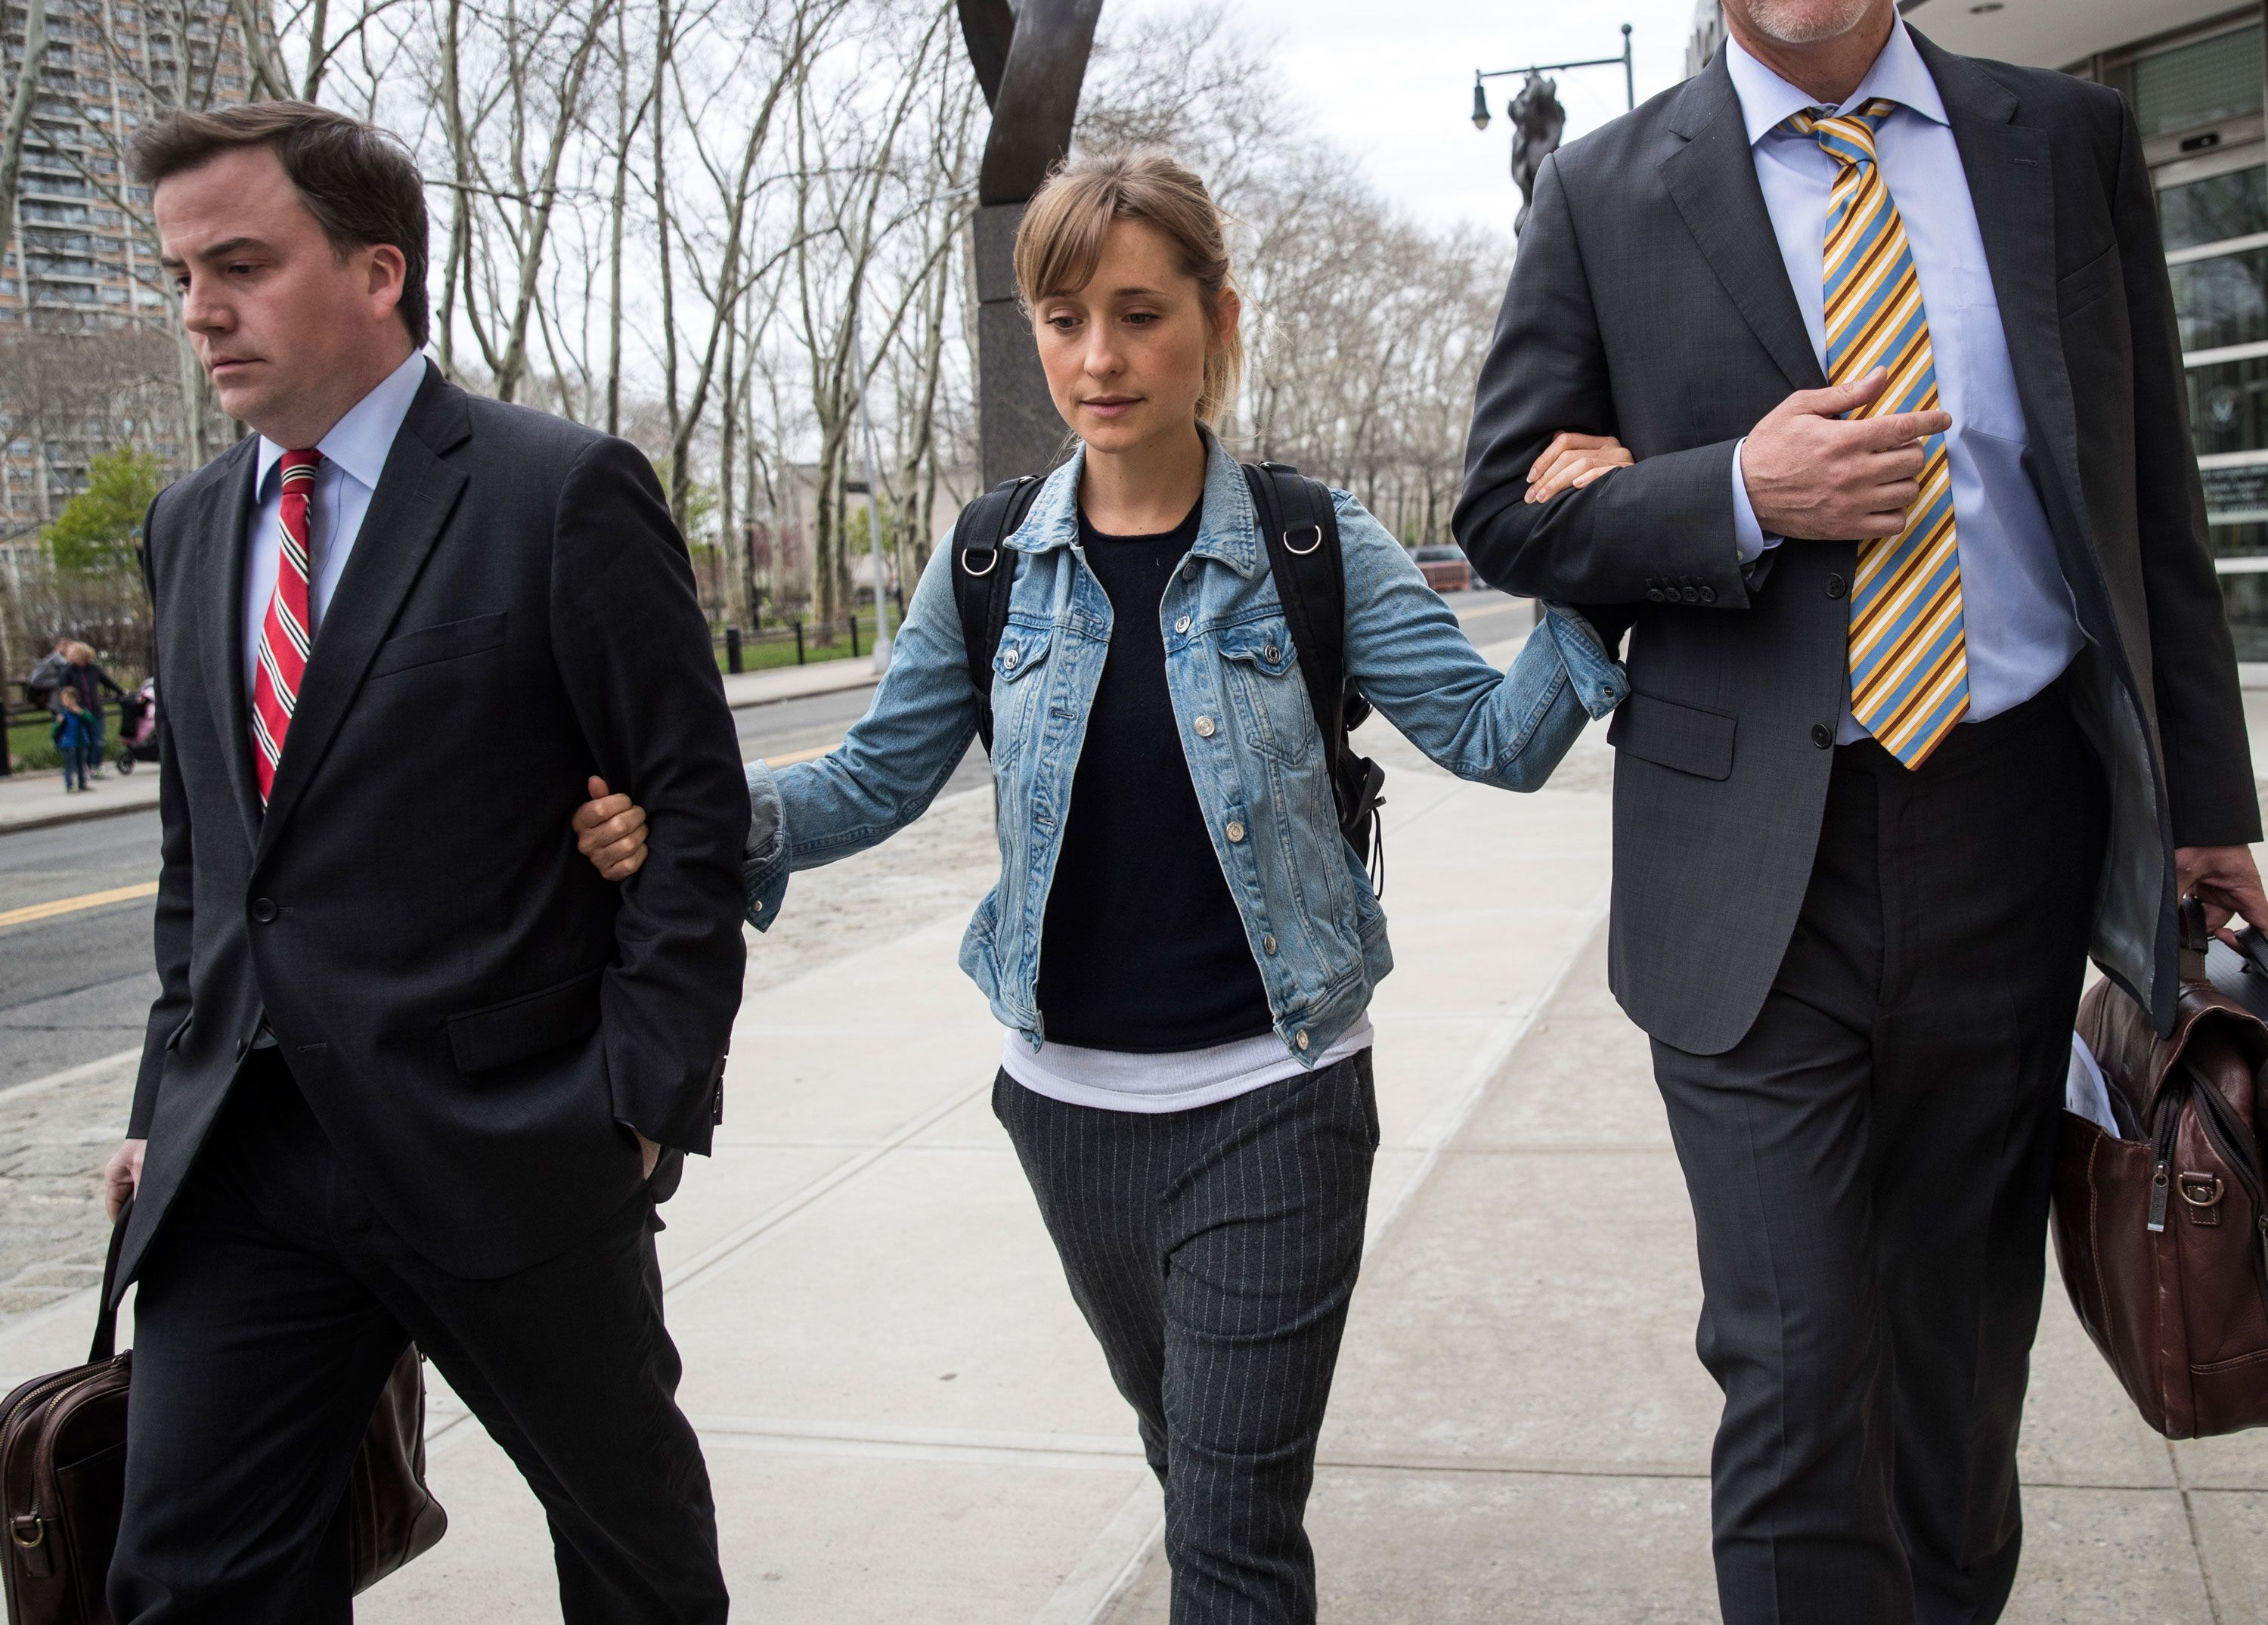 Smallville star Allison Mack pleads guilty to charges relating to recruiting women into 'sex cult' NXIVM